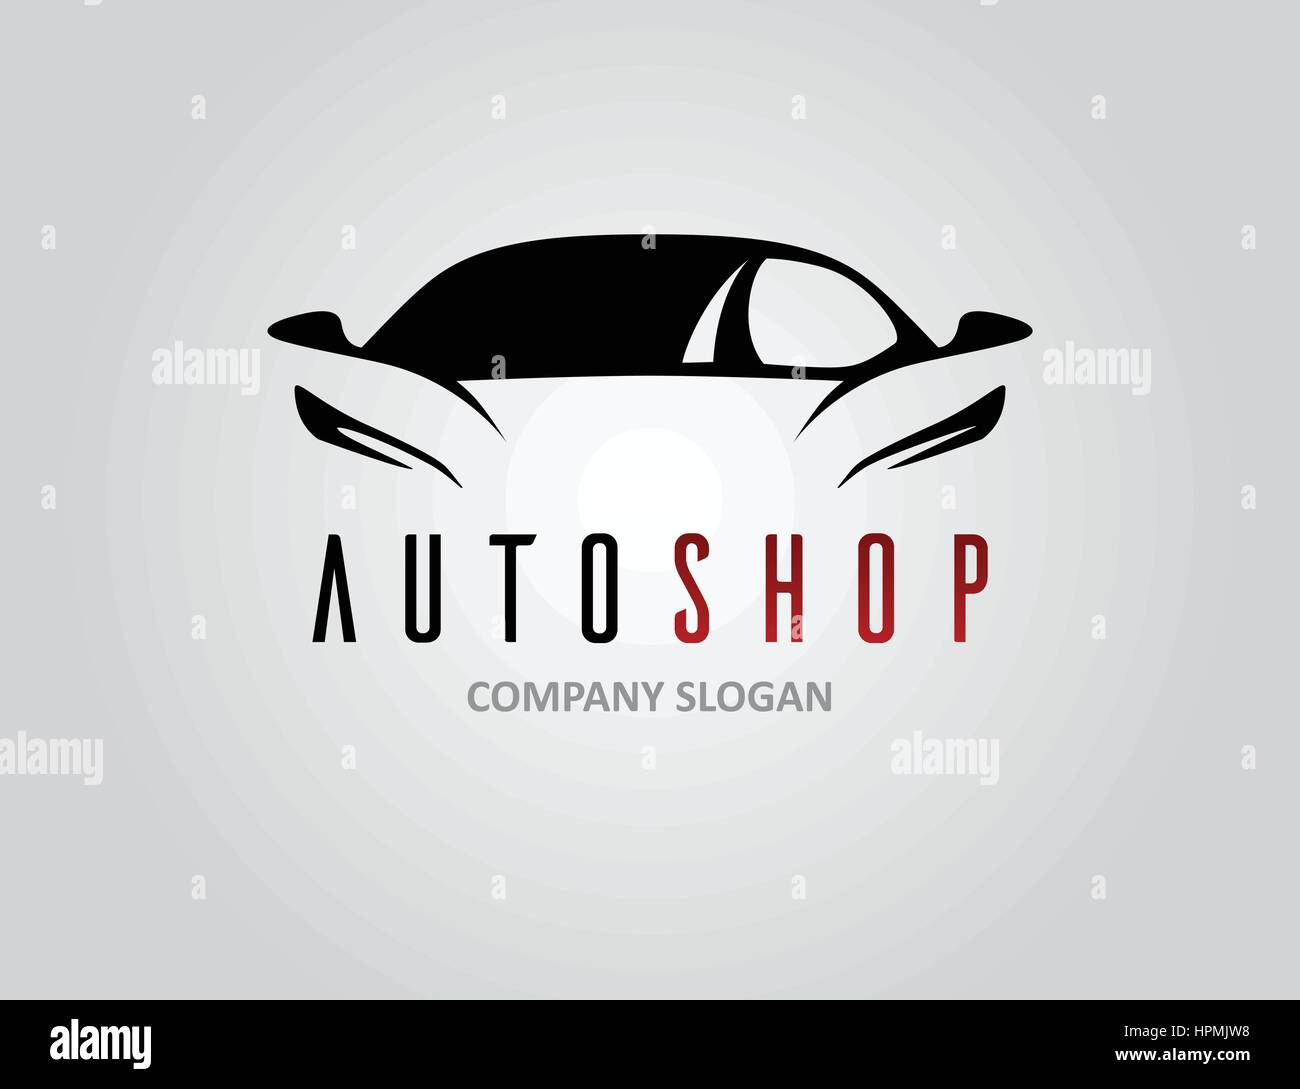 Auto shop car logo design with concept sports vehicle icon silhouette on light grey background. Vector illustration. - Stock Image